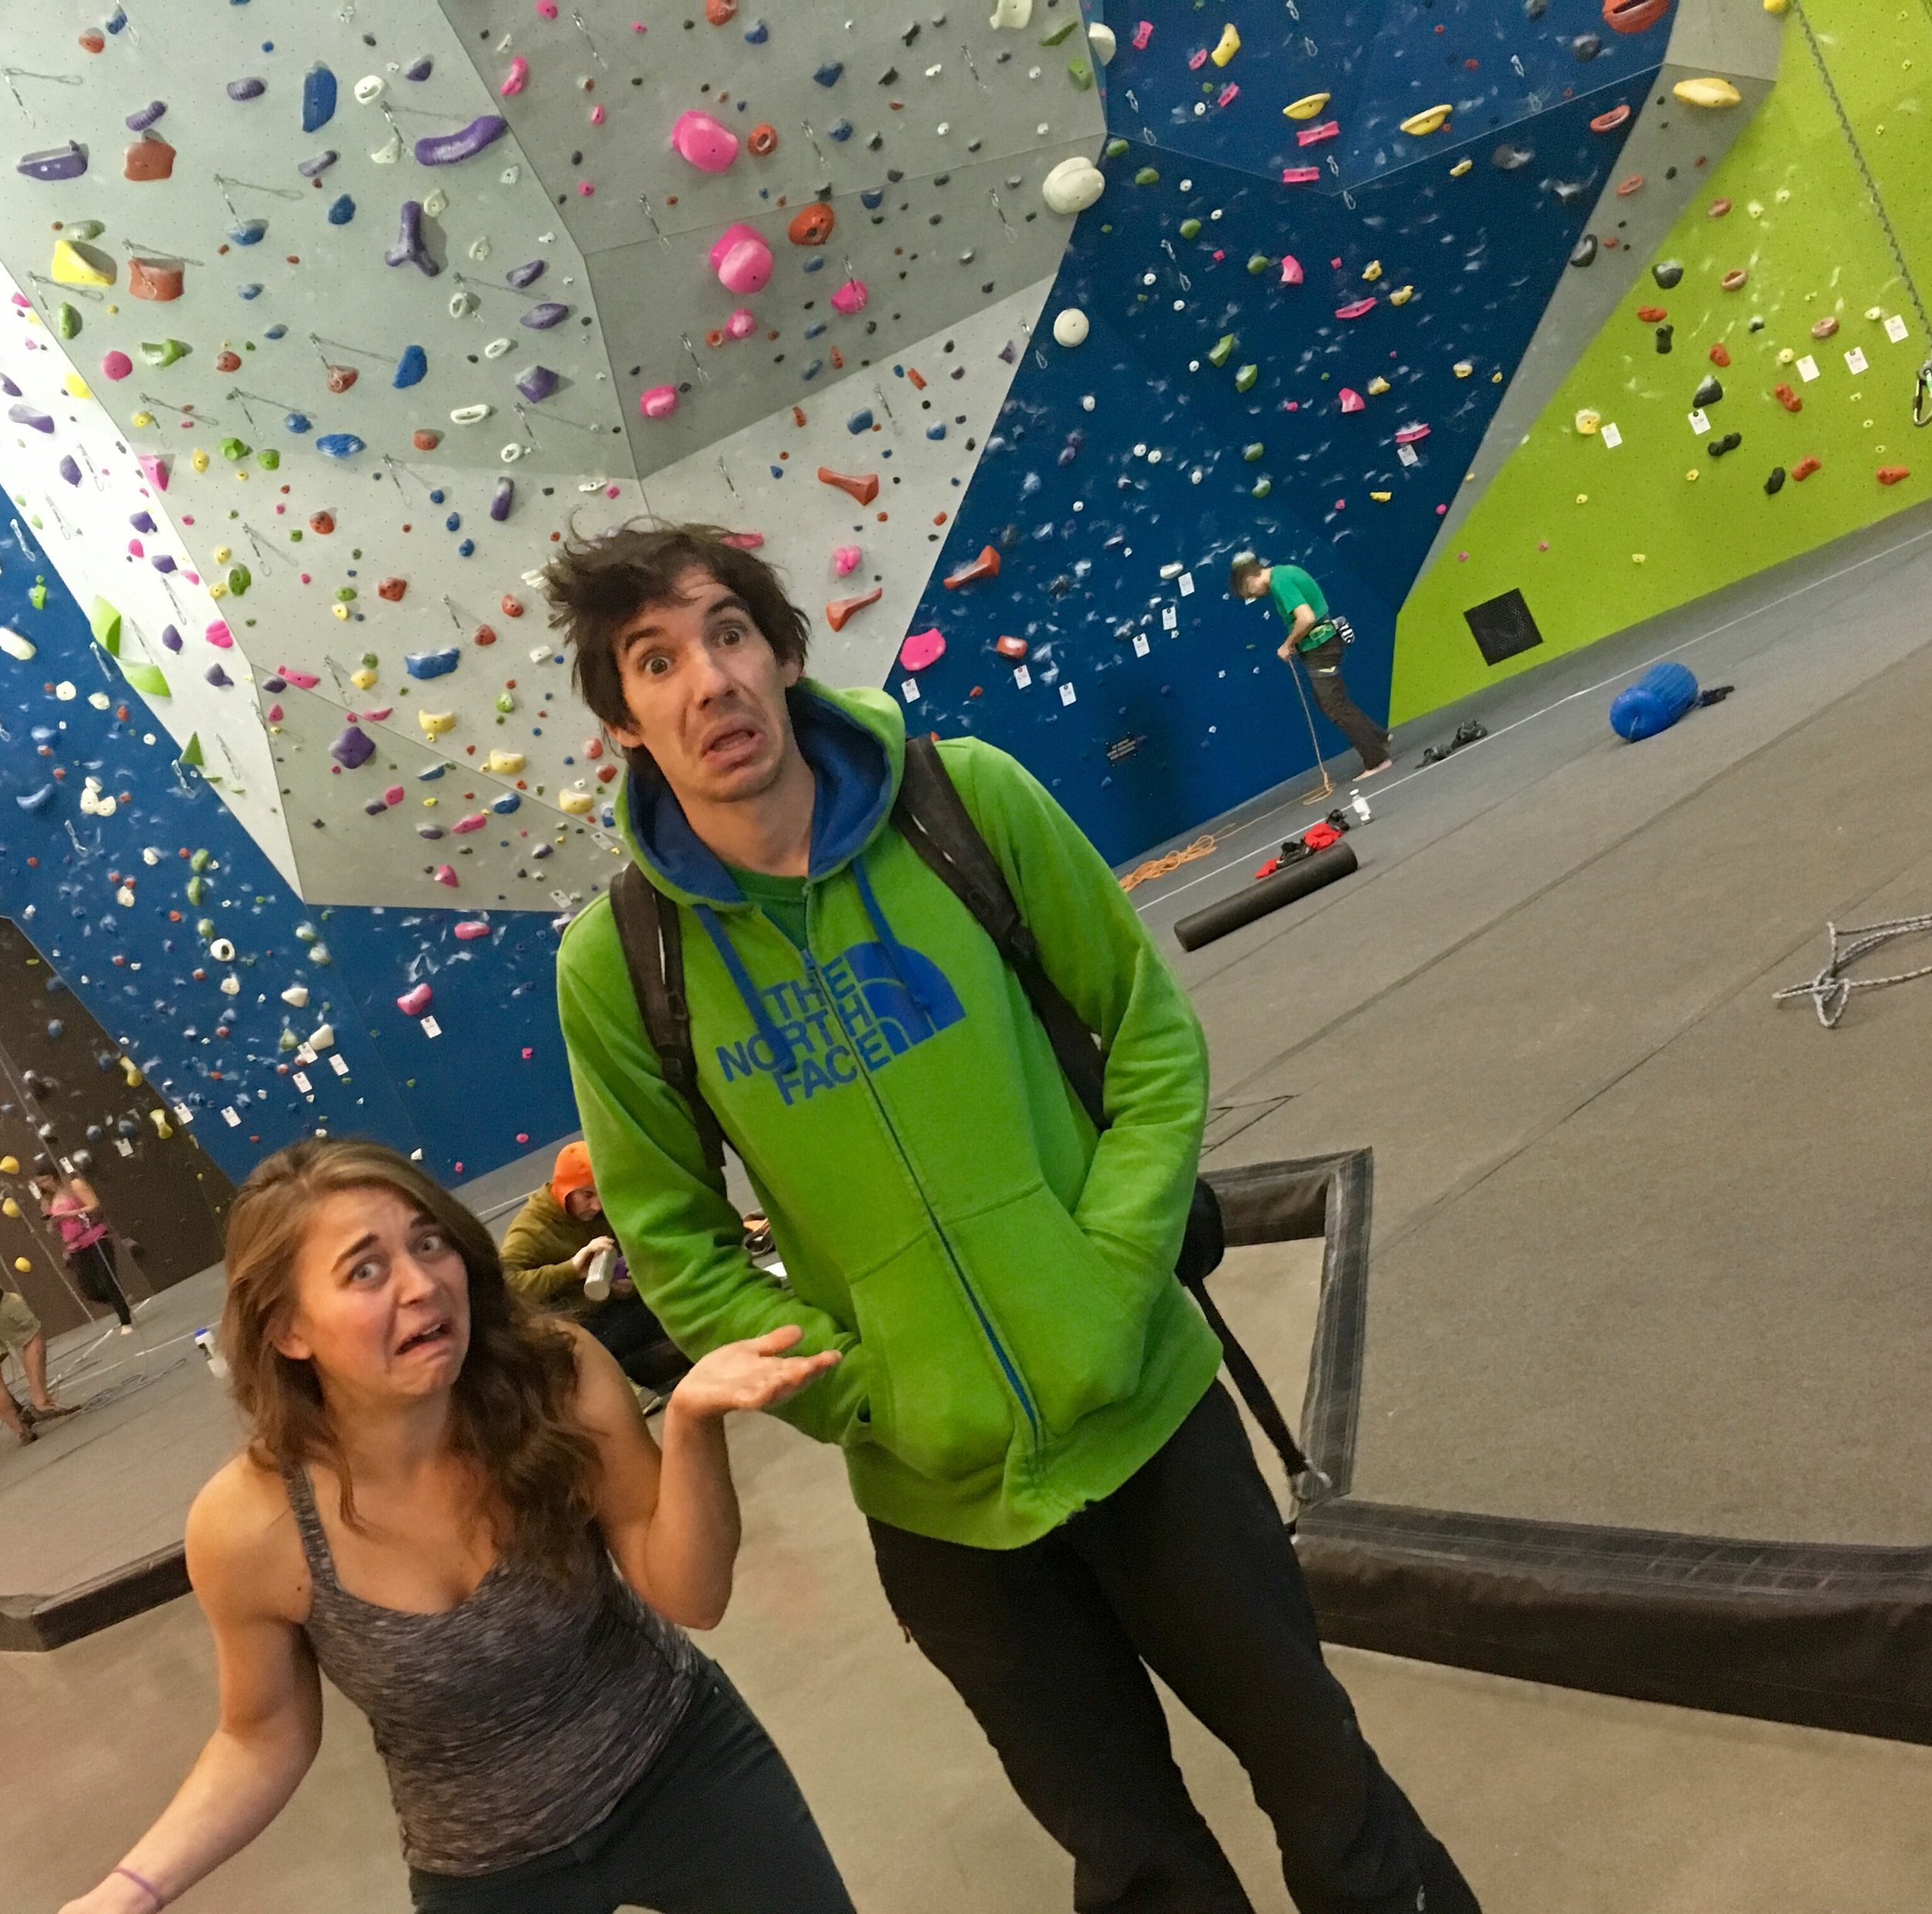 """Erin Monahan and Alex Honnold are confused as to why people glorify van life when it comes to sprinters and """"dirtbags,"""" but we don't give respect and acknowledgement to those who do it out of necessity."""